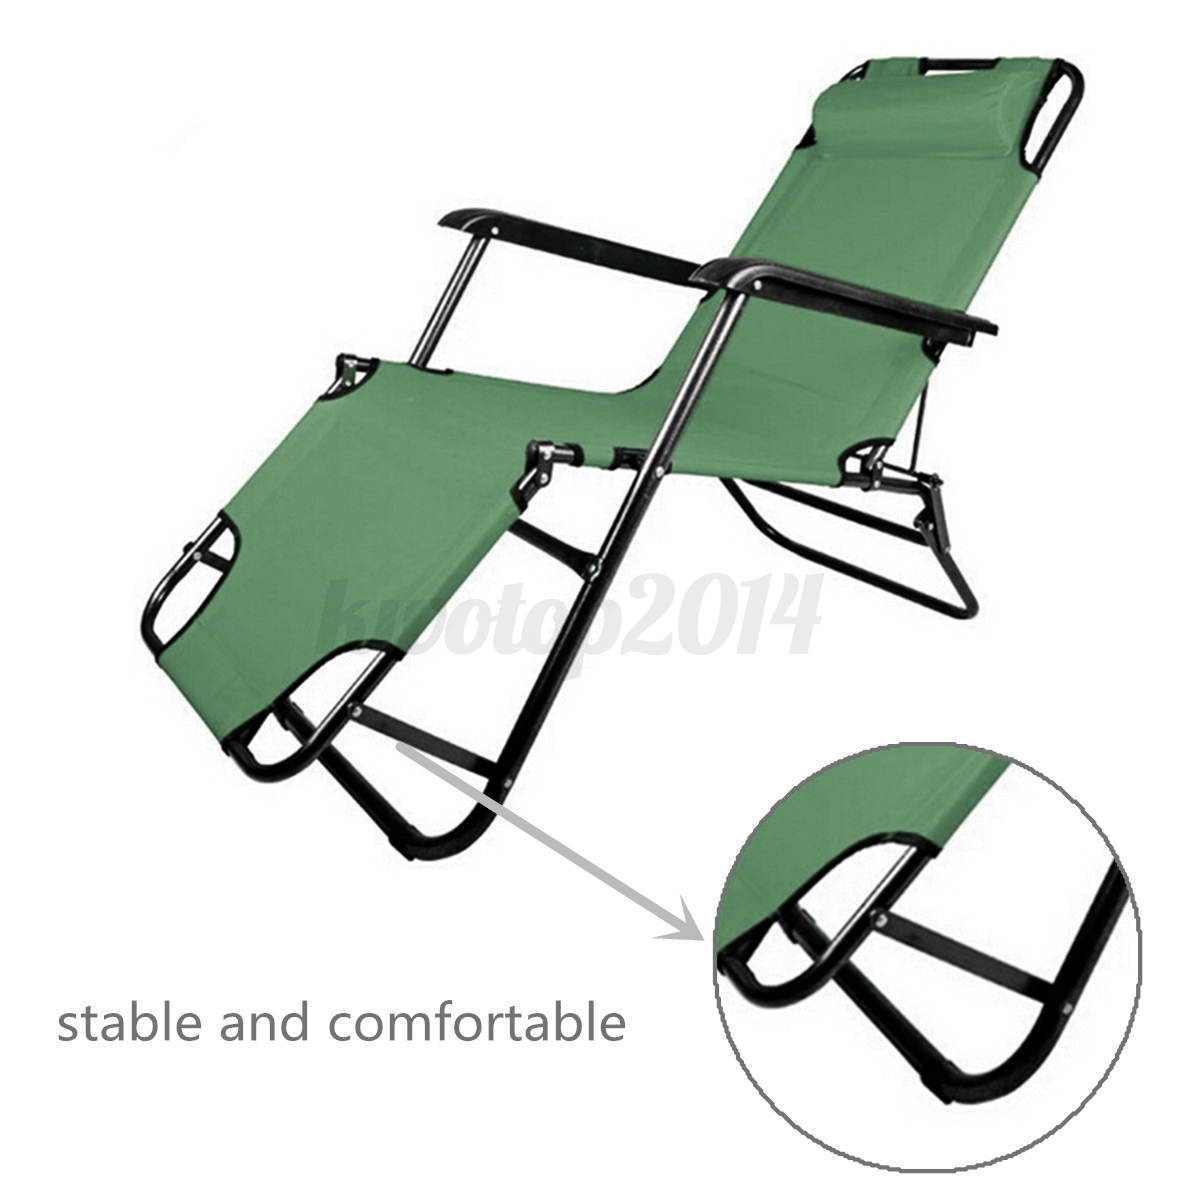 Lawn Chair Lounger Us Metal Folding Chaise Lounge Patio Chair Outdoor Pool